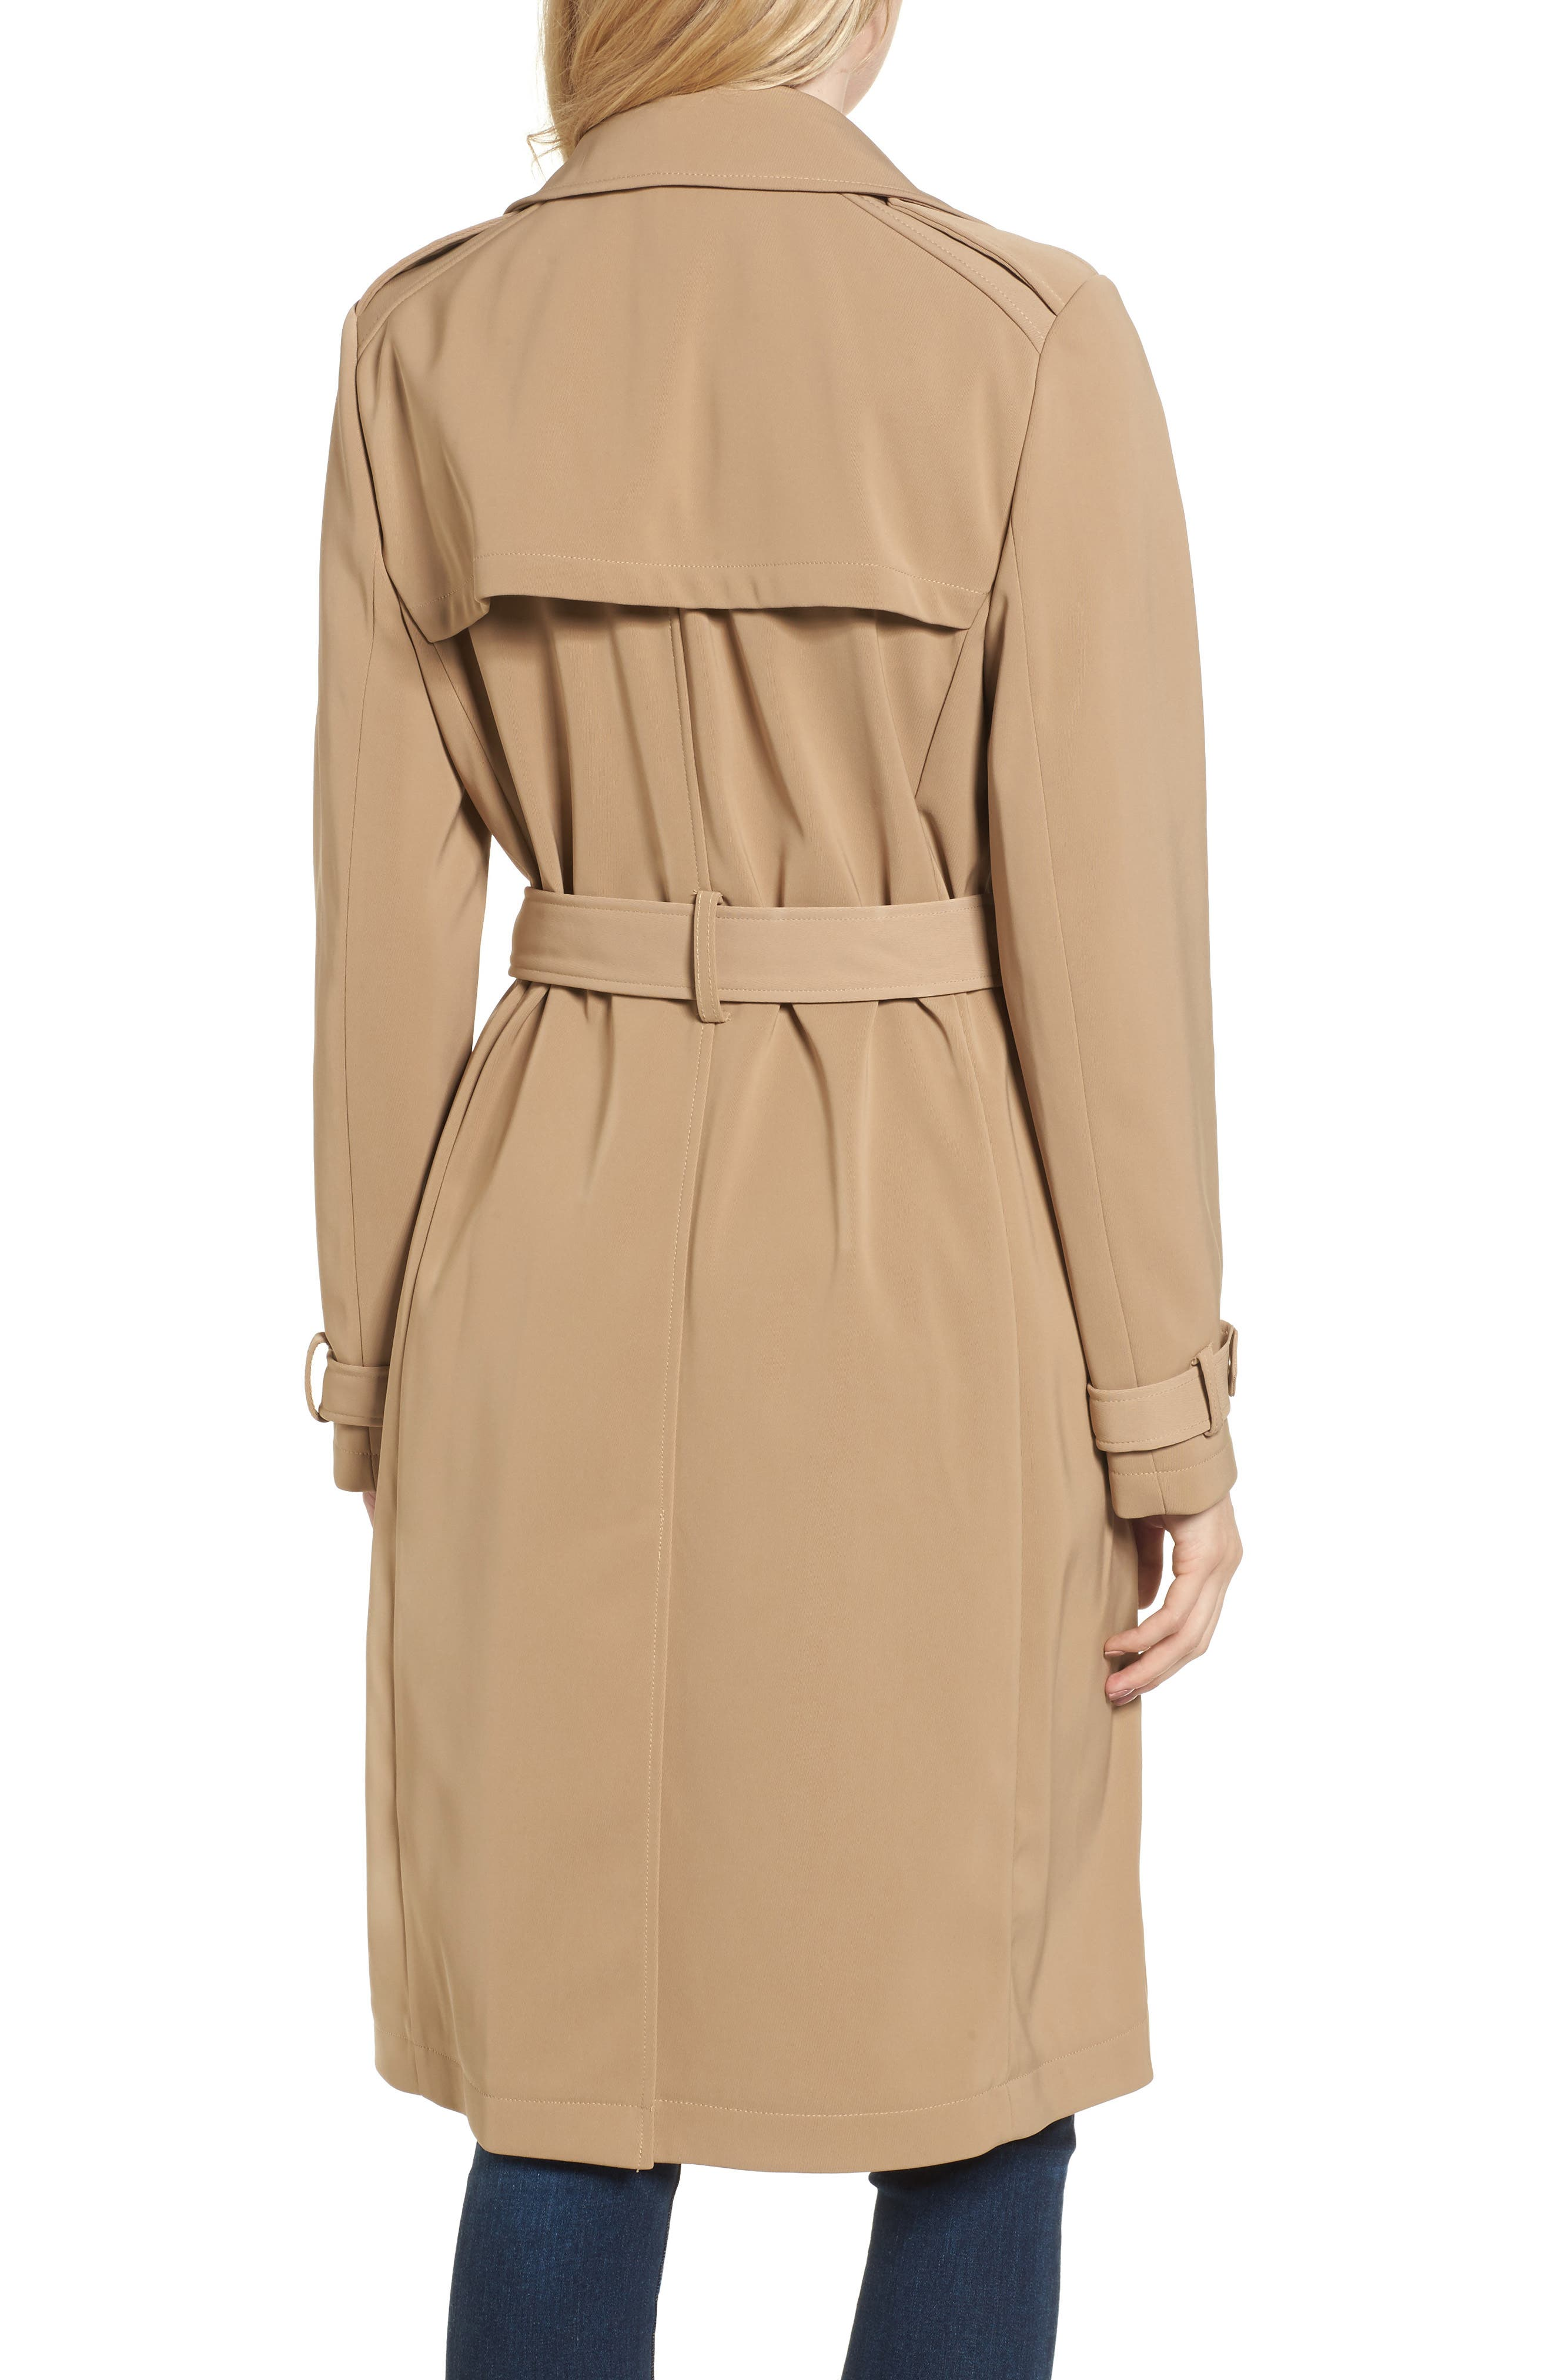 DKNY French Twill Water Resistant Trench Coat,                             Alternate thumbnail 2, color,                             Khaki